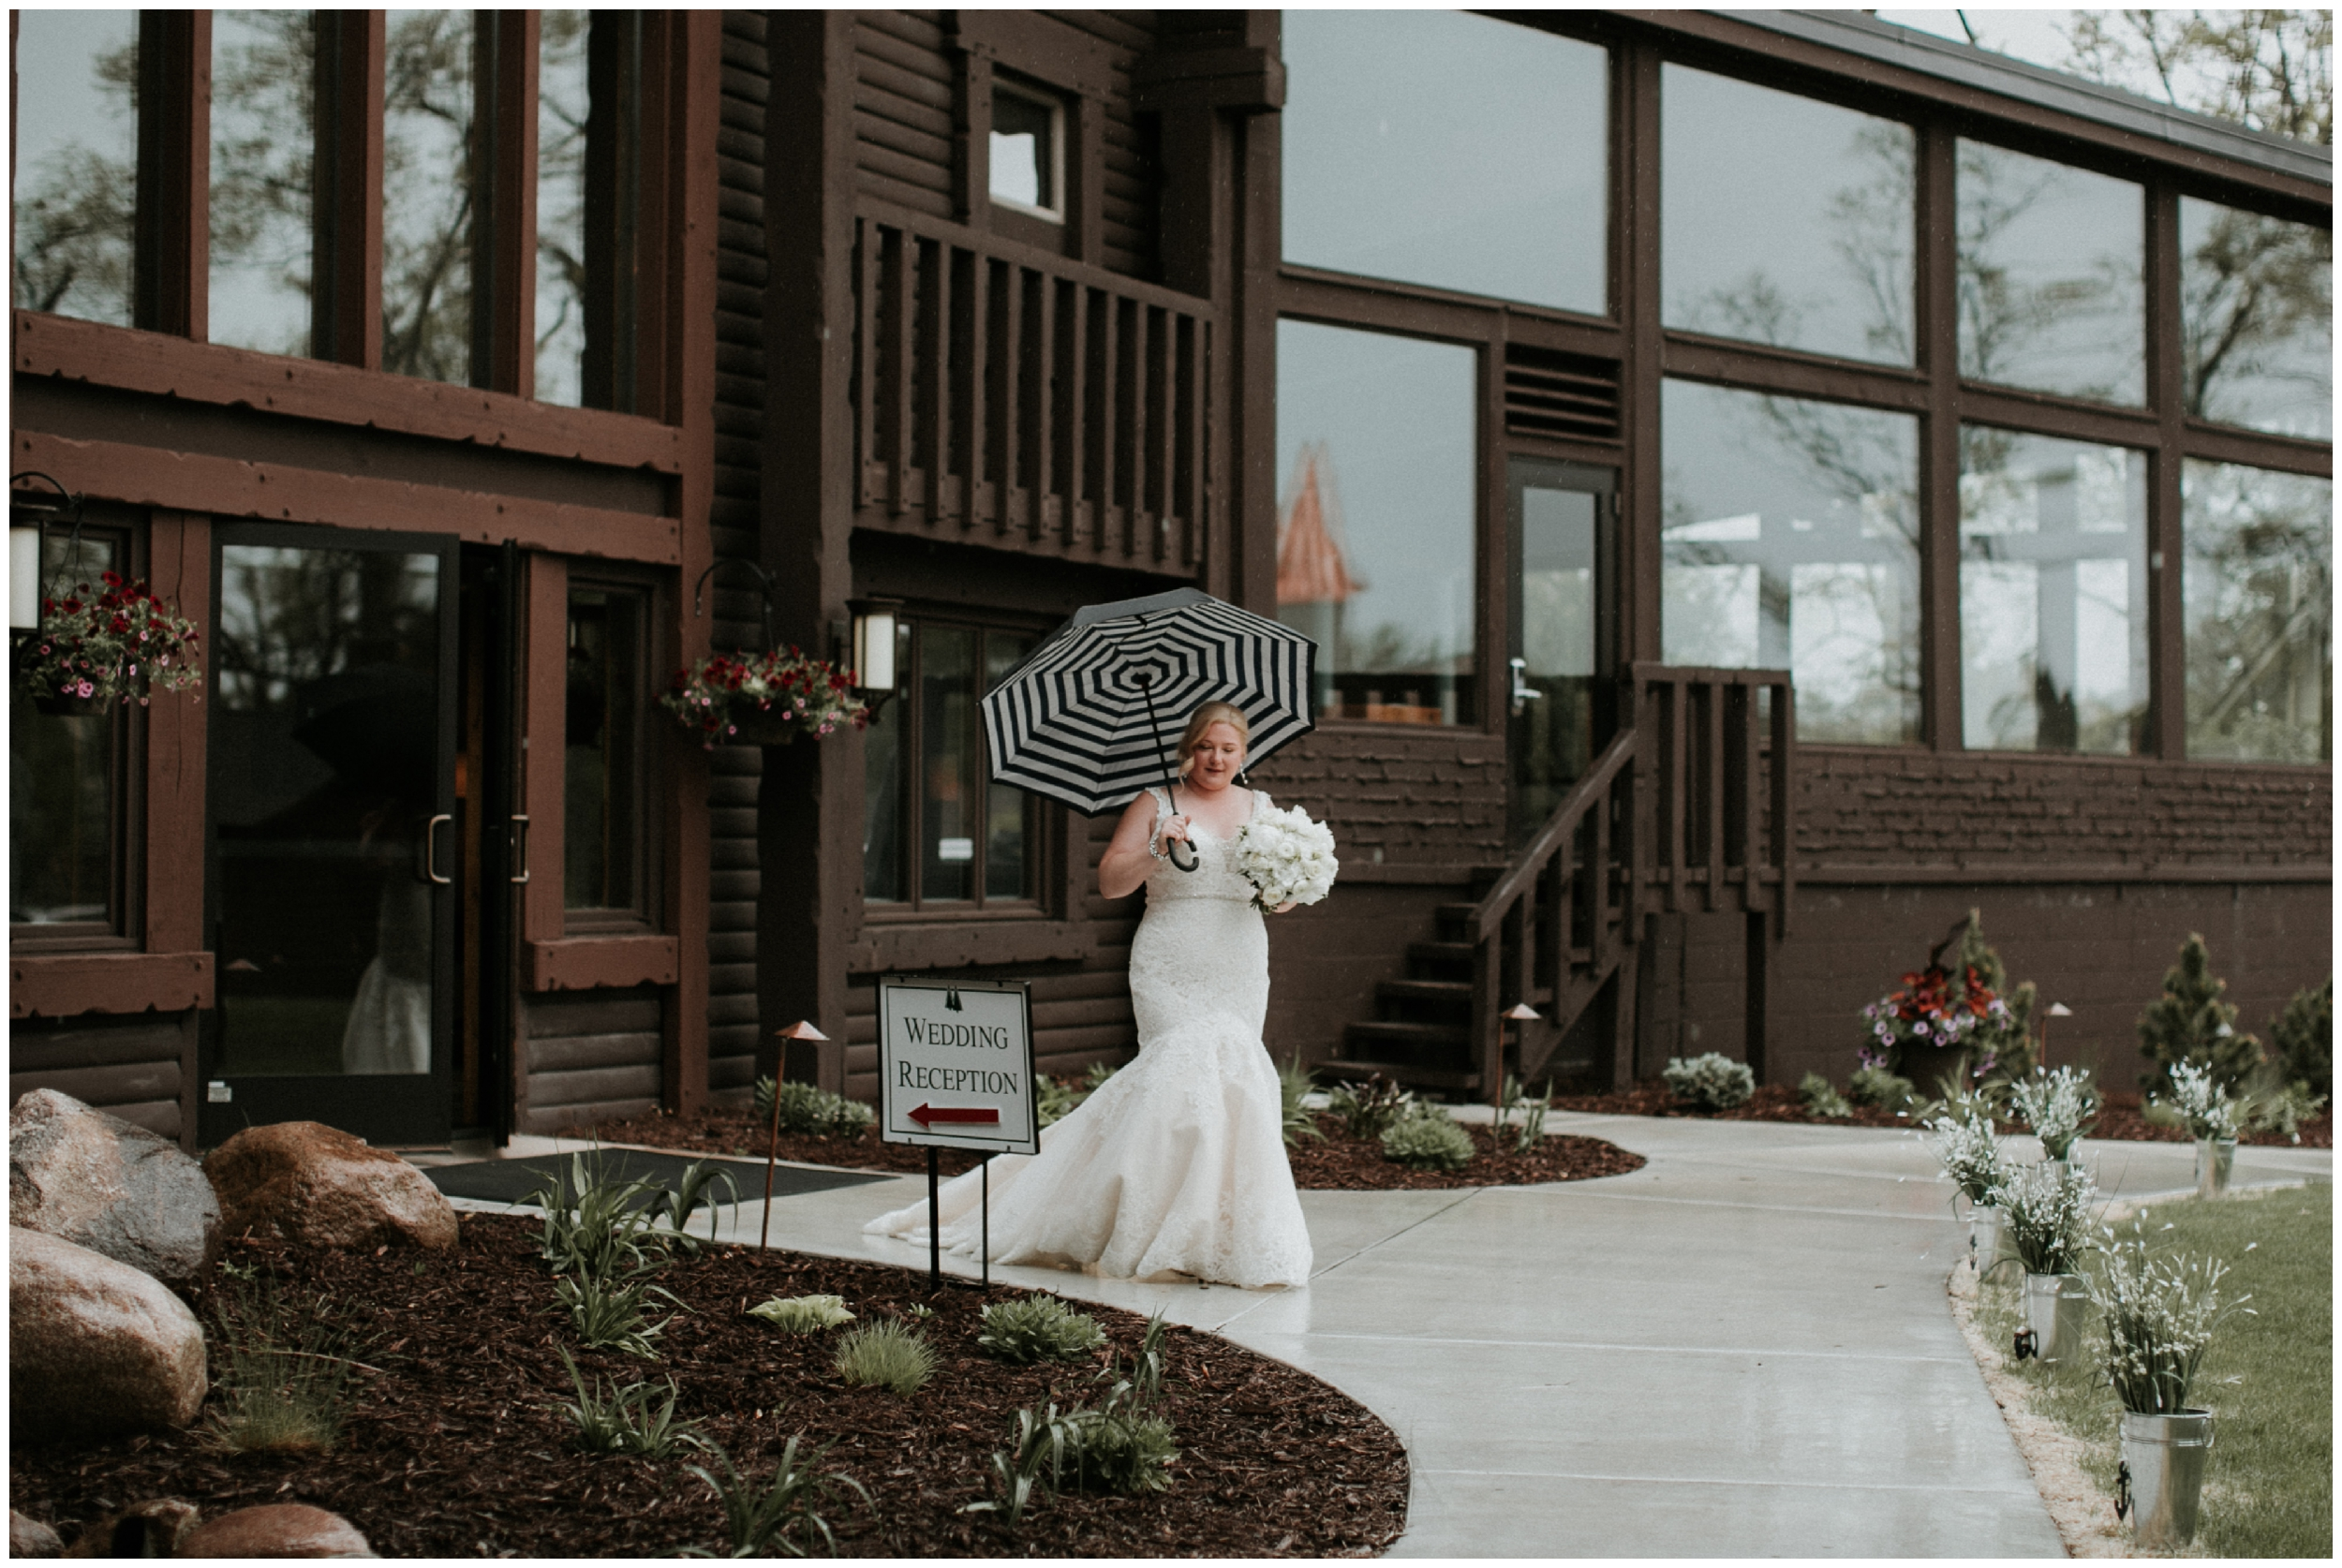 Rainy Minnesota wedding